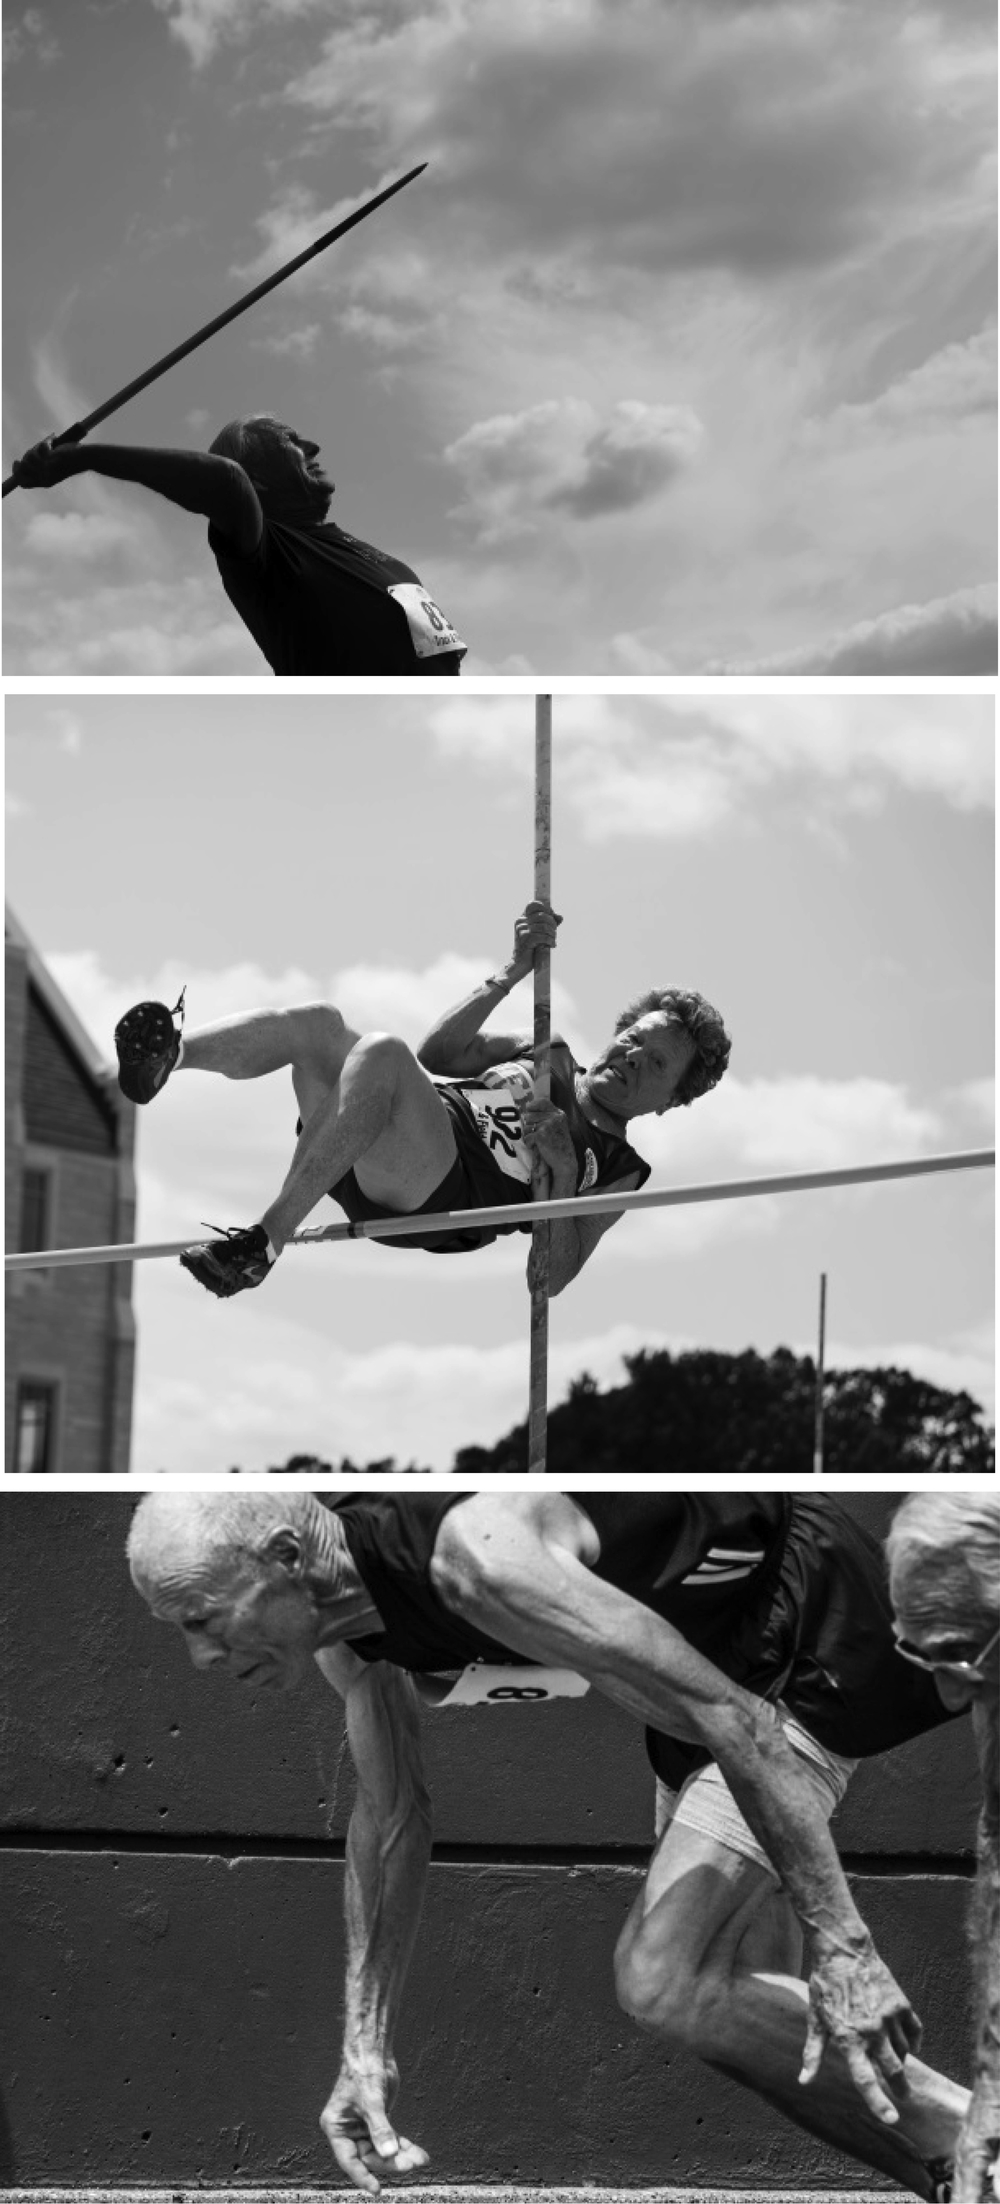 "Athletes Triptych: photographs by Elliot Burg, from the Senior Games in Minneapolis, 2015 Elliot has been taking photographs with a joy in the art form since he first got my hands on a film camera while traveling through the Middle East and Asia in the 1970's. Much of his work has focused on portraits of people in other places and cultures. His photographs have been exhibited in Vermont, New Hampshire, and New York City. A member of the Vermont-based ""f/7"" group of photographers, Elliot recently exhibited, at the Kellogg-Hubbard Library in Montpelier and the Dartmouth-Hitchcock Medical Center, a collection of black and white photographs of track and field athletes of advanced age taken at the 2015 National Senior Games. He is currently working on an exhibition of photographs from Myanmar and Laos. Contact him at eburg4@gmail.com, or on the web at: elliotburgphoto.squarespace.com"